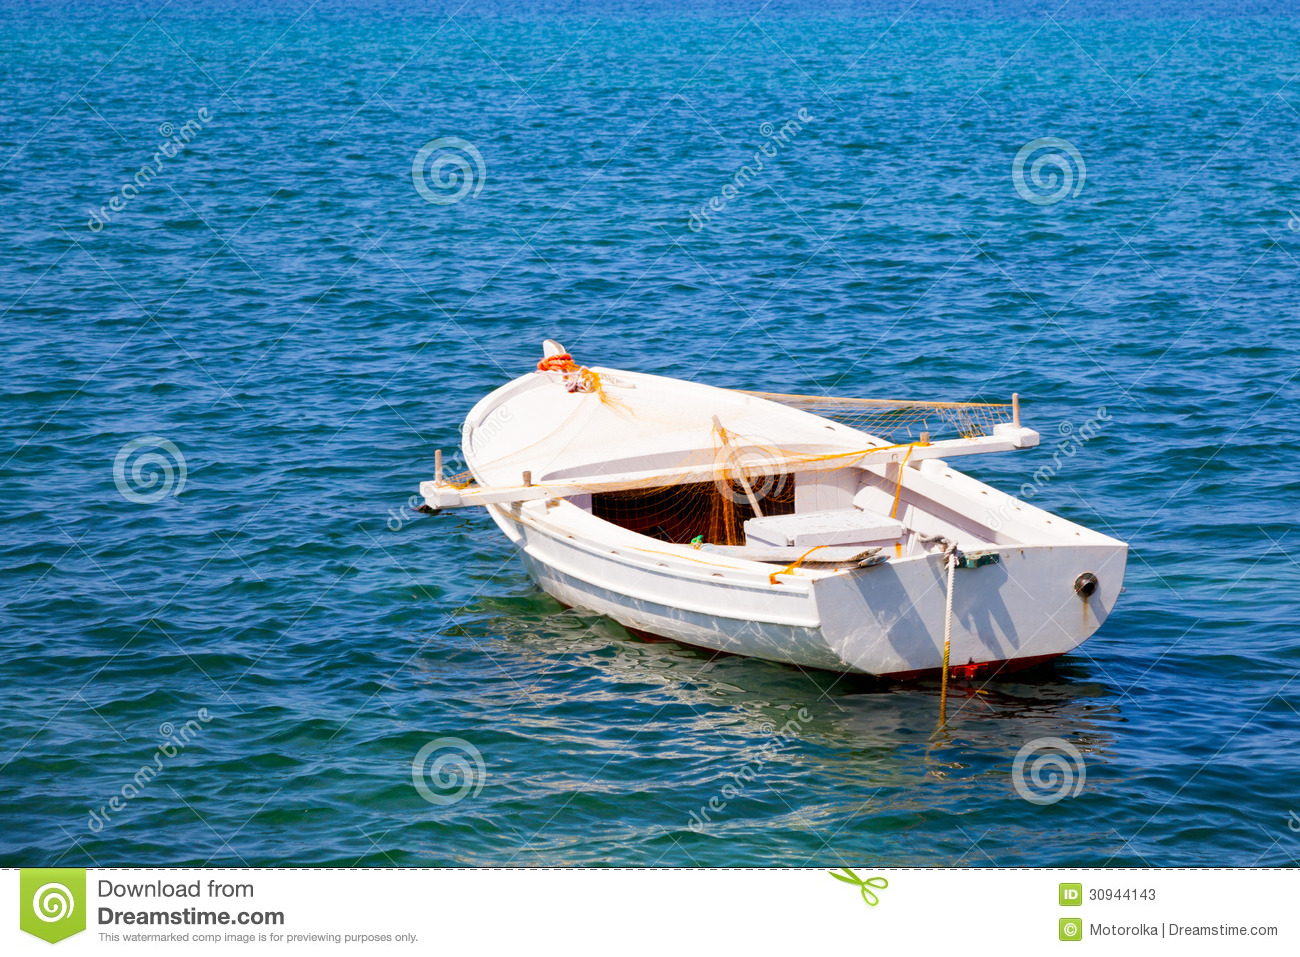 Boat: Boat In Water